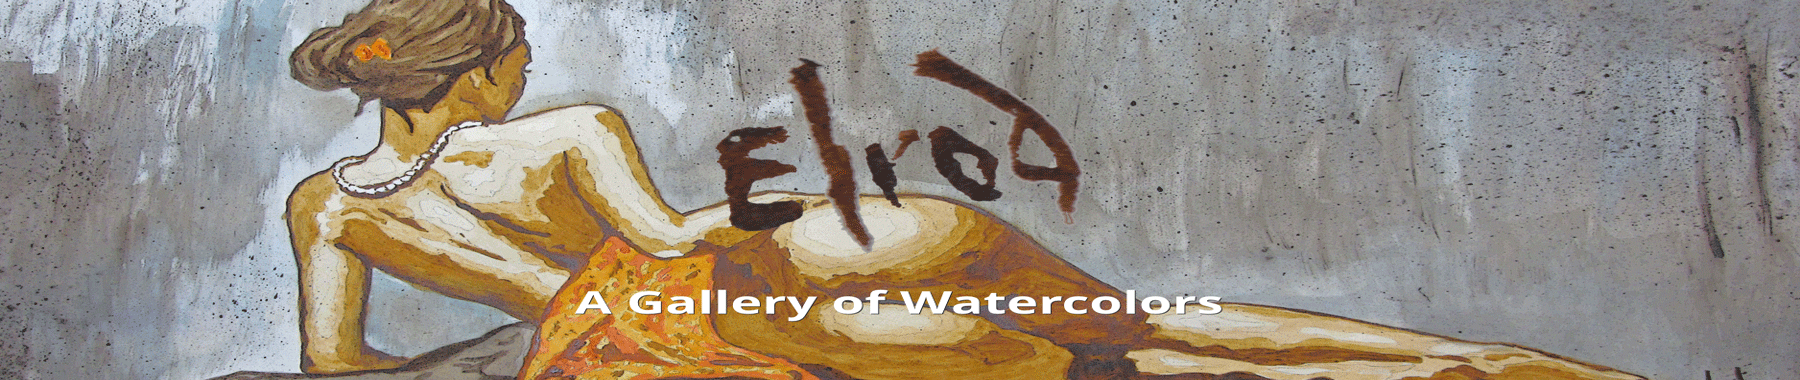 Elrod_Art_Auction_Slide